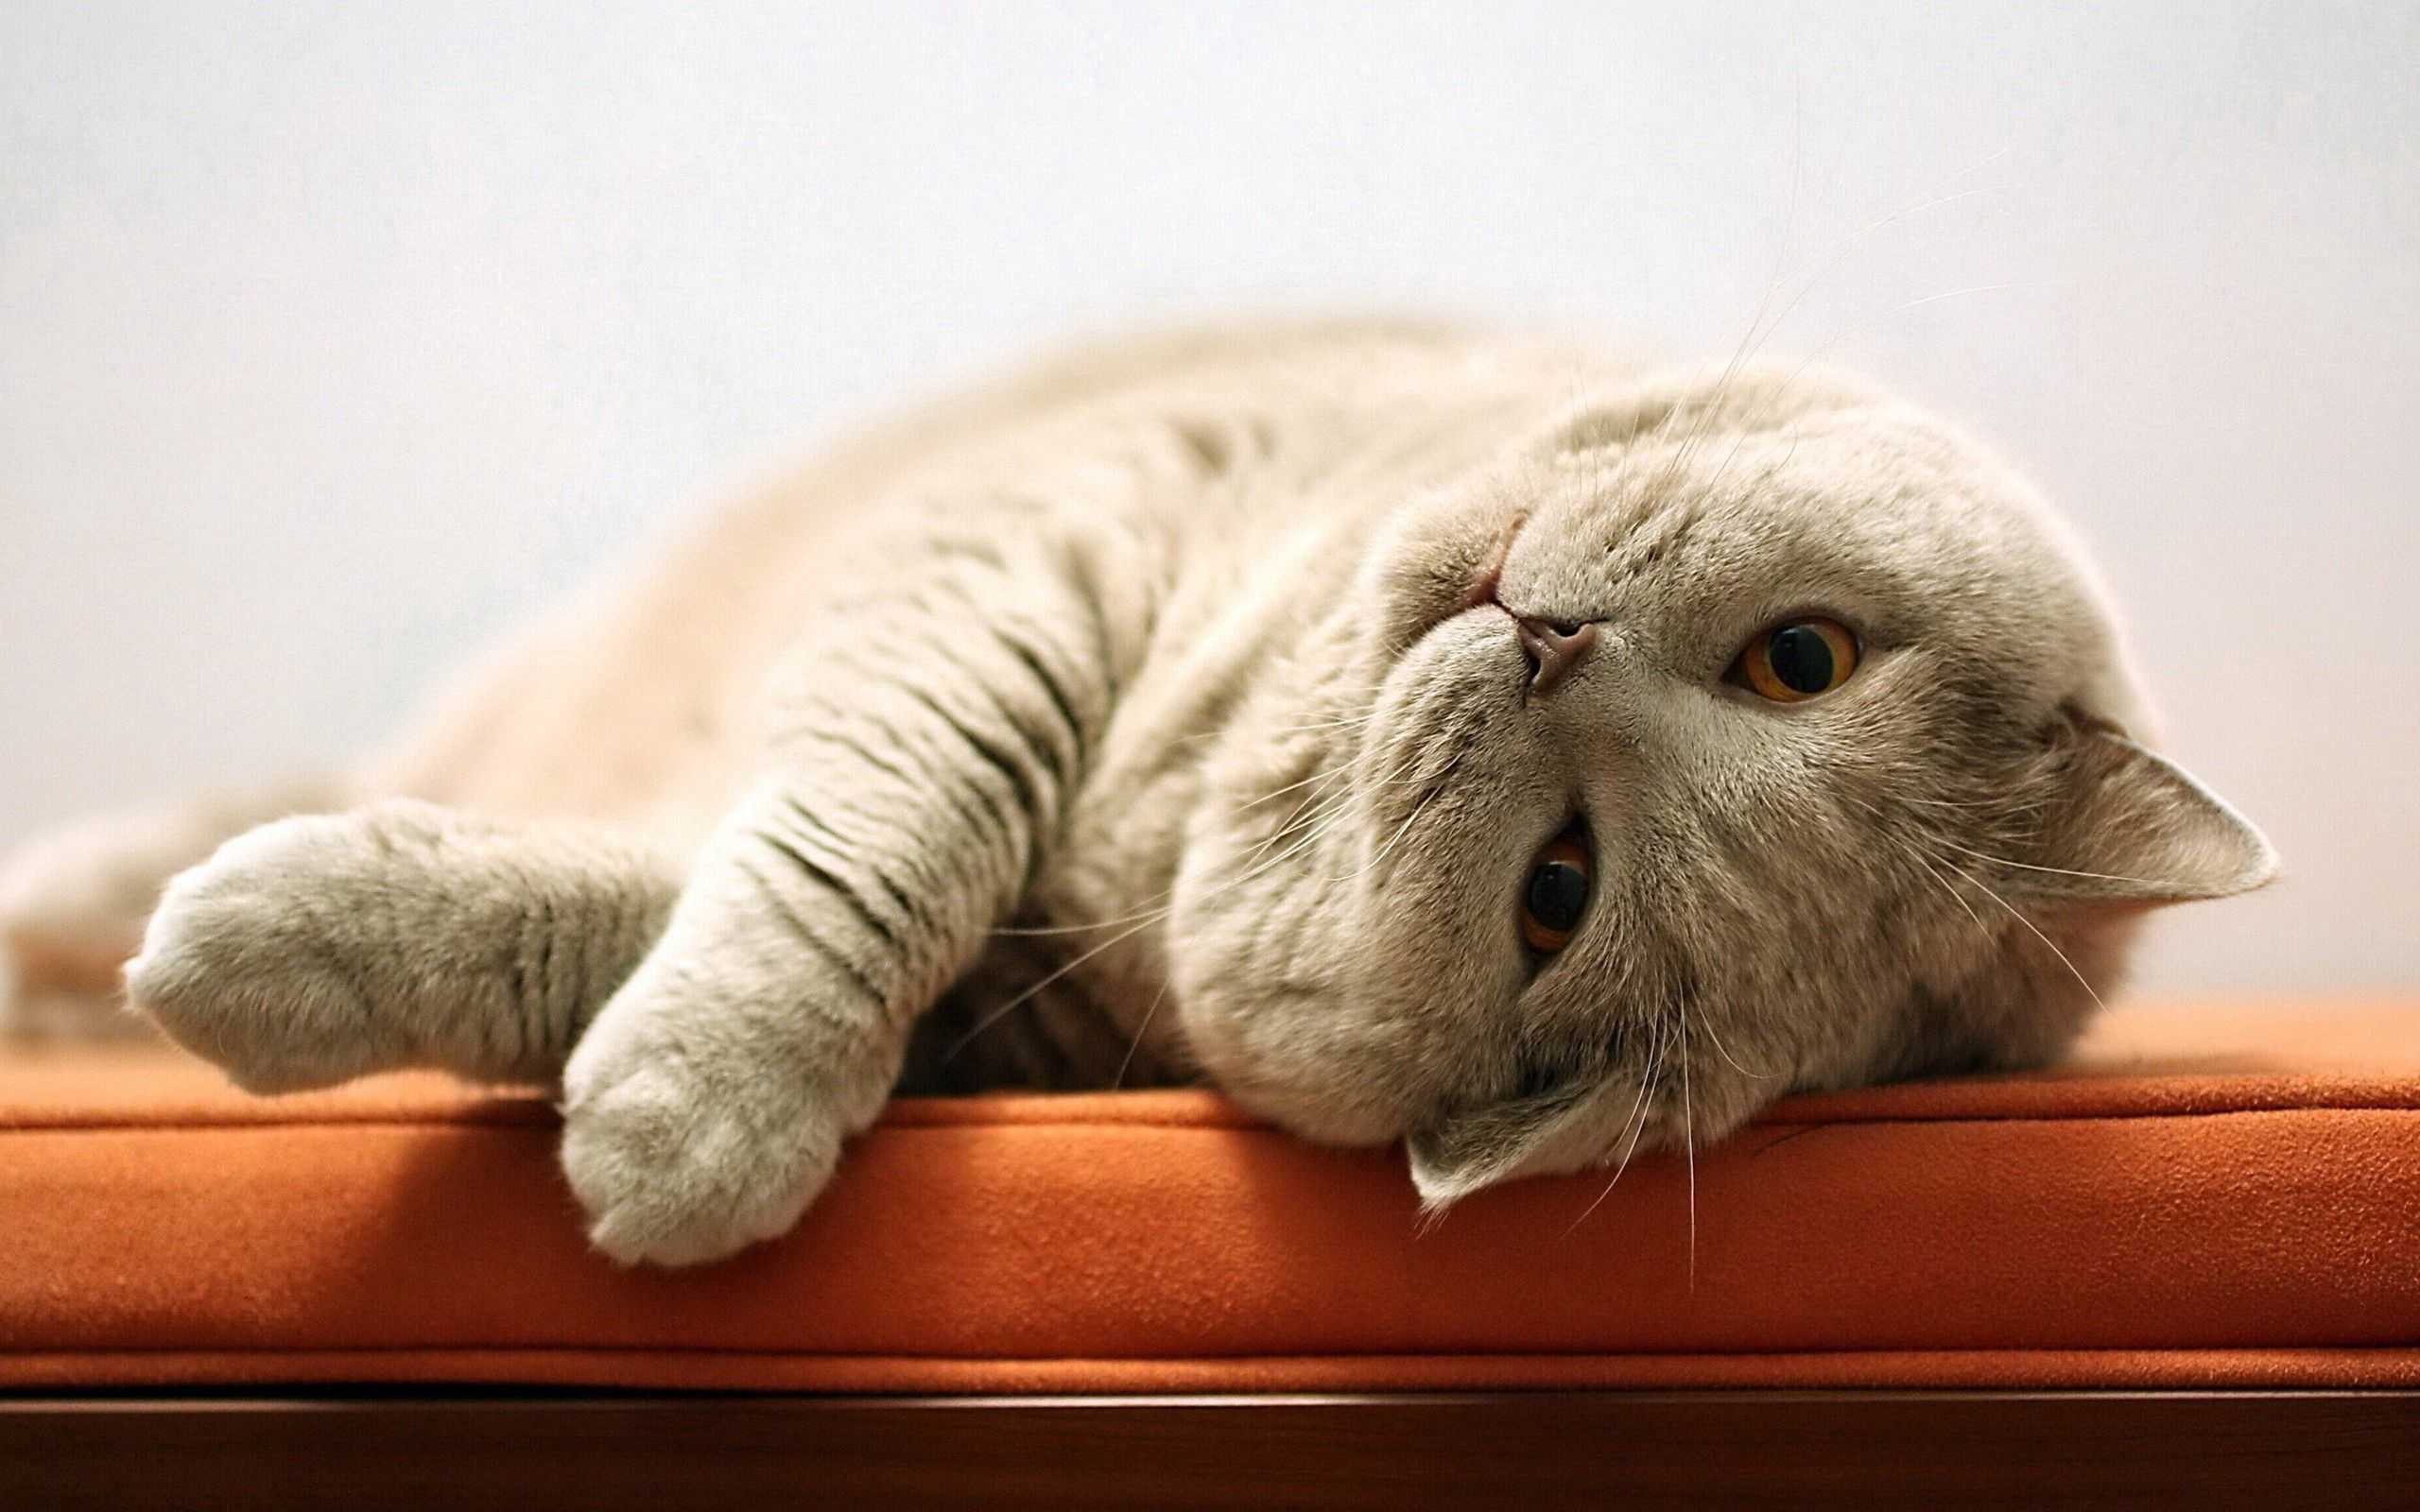 95769 download wallpaper Animals, Cat, Fat, Thick, Playful, To Lie Down, Lie screensavers and pictures for free